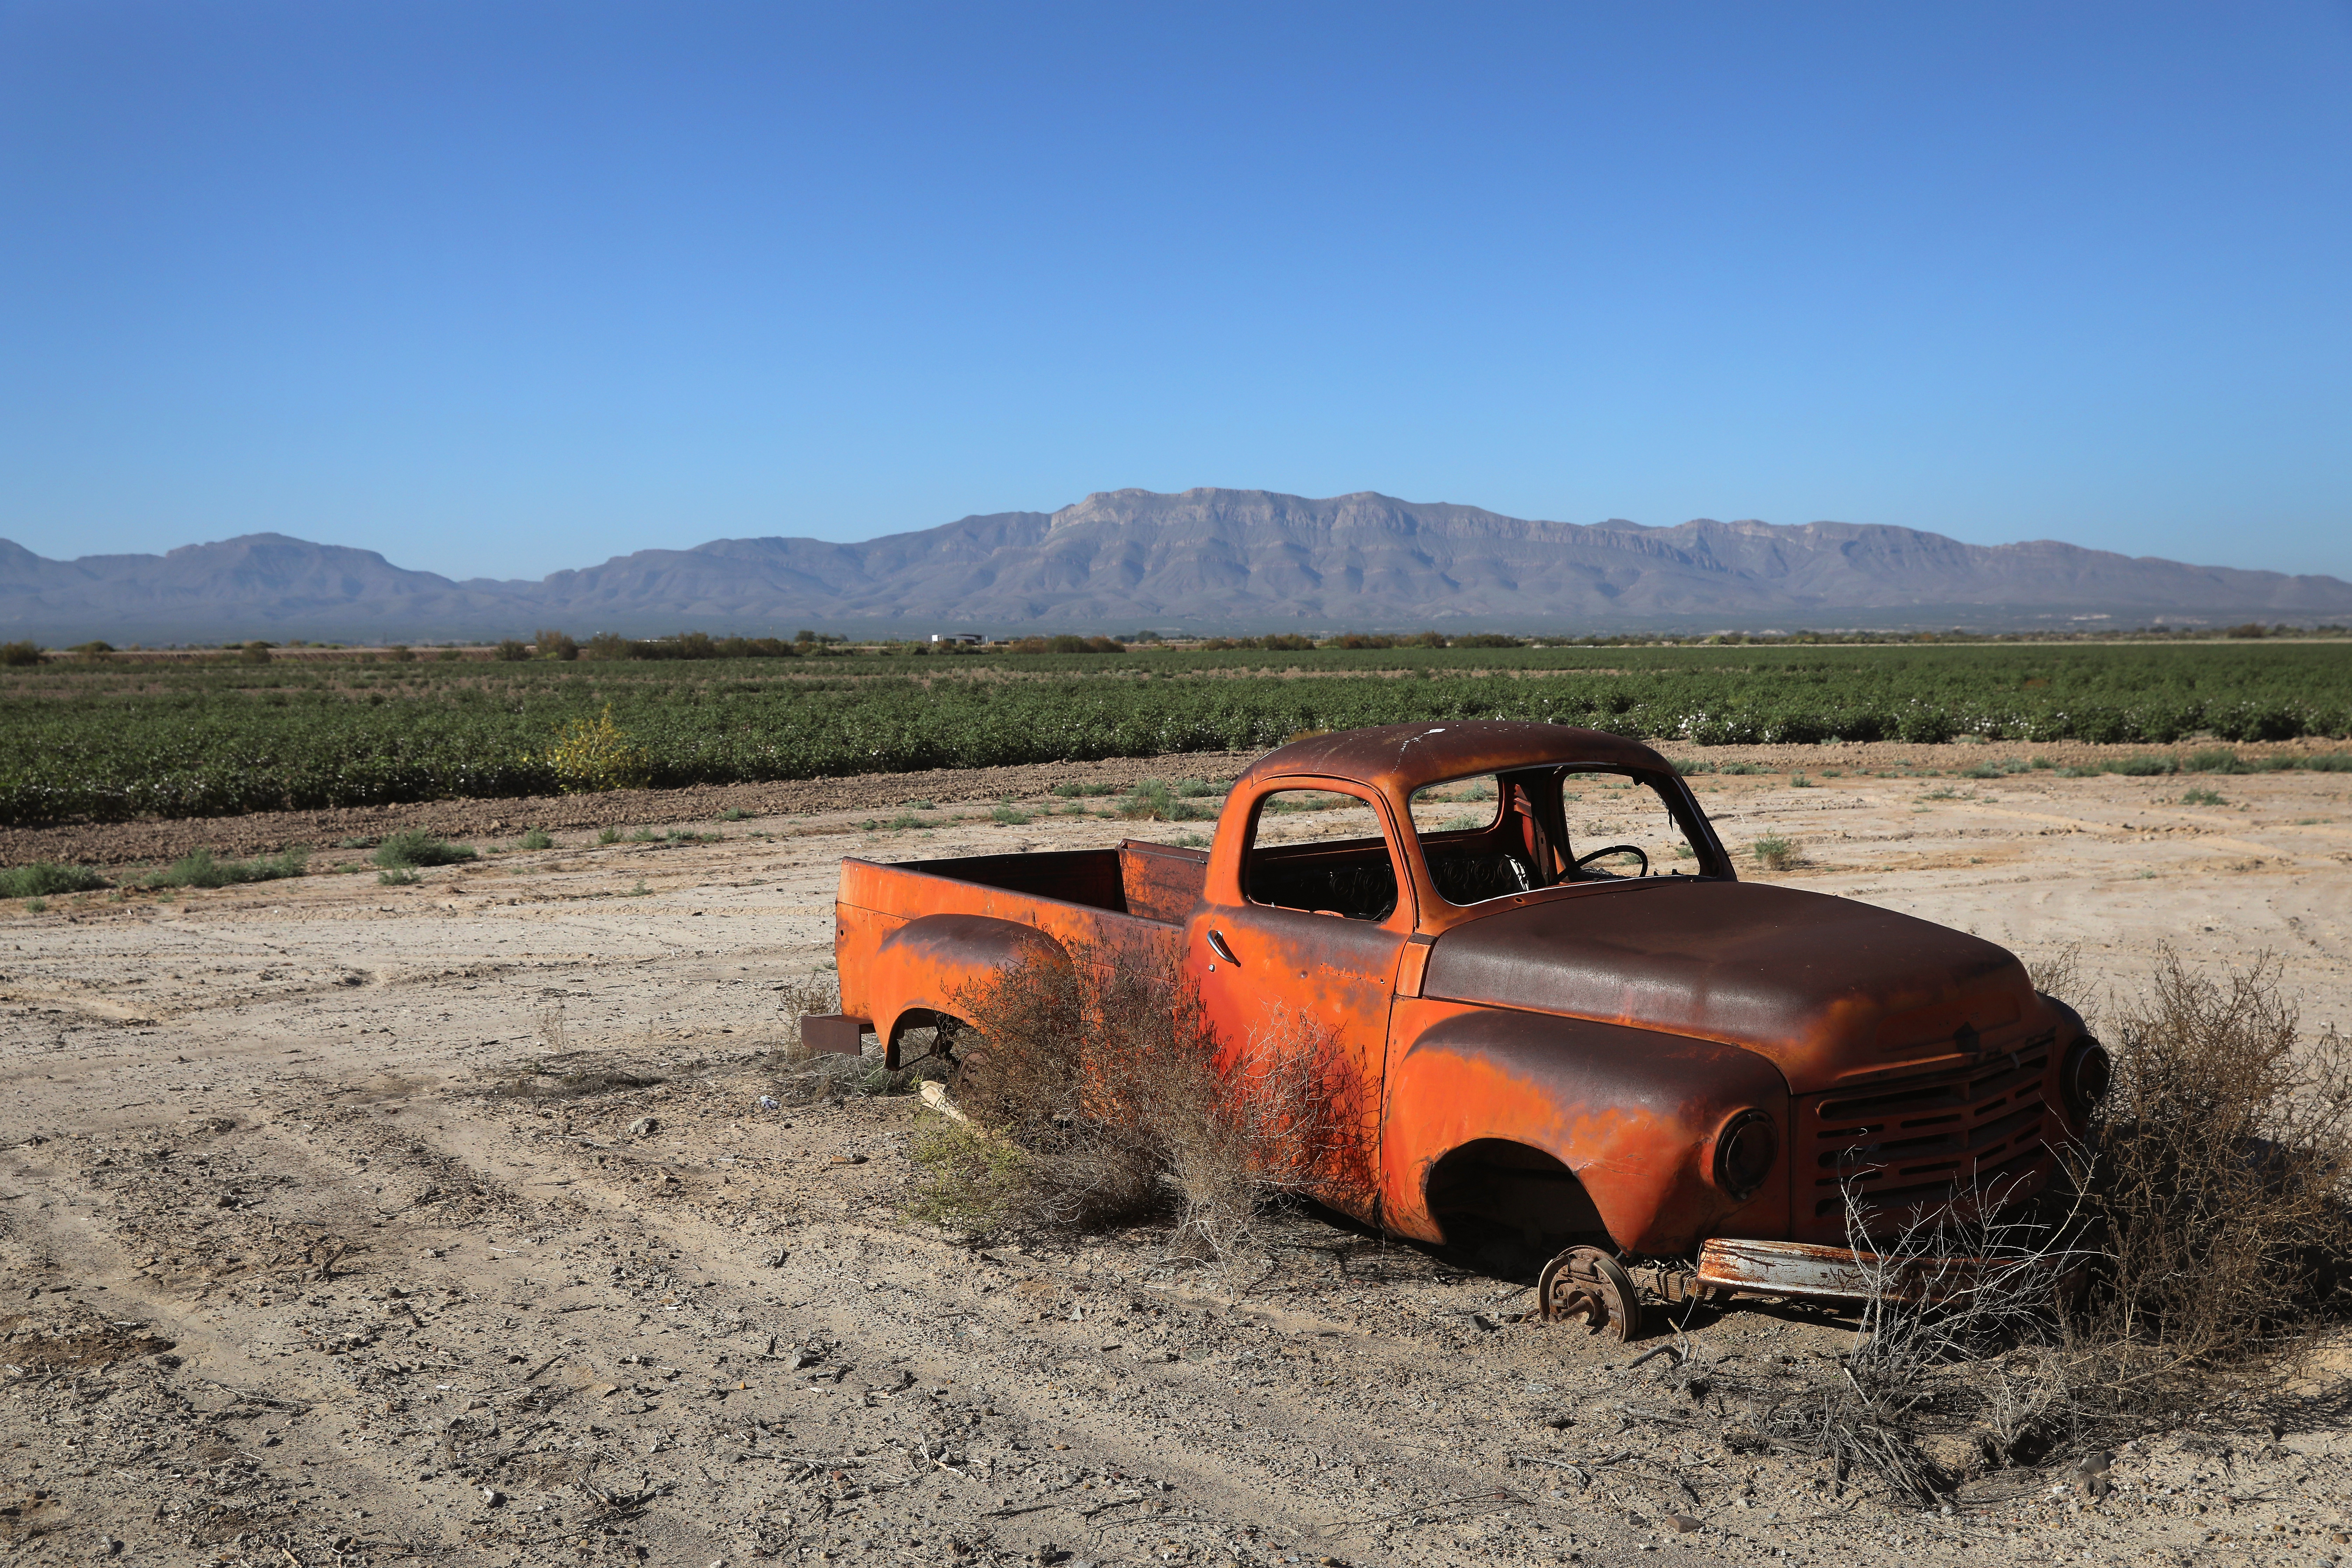 A Studebaker sits outside a cotton field near the U.S.-Mexico border on Oct. 14, 2016 near Fort Hancock, Texas.